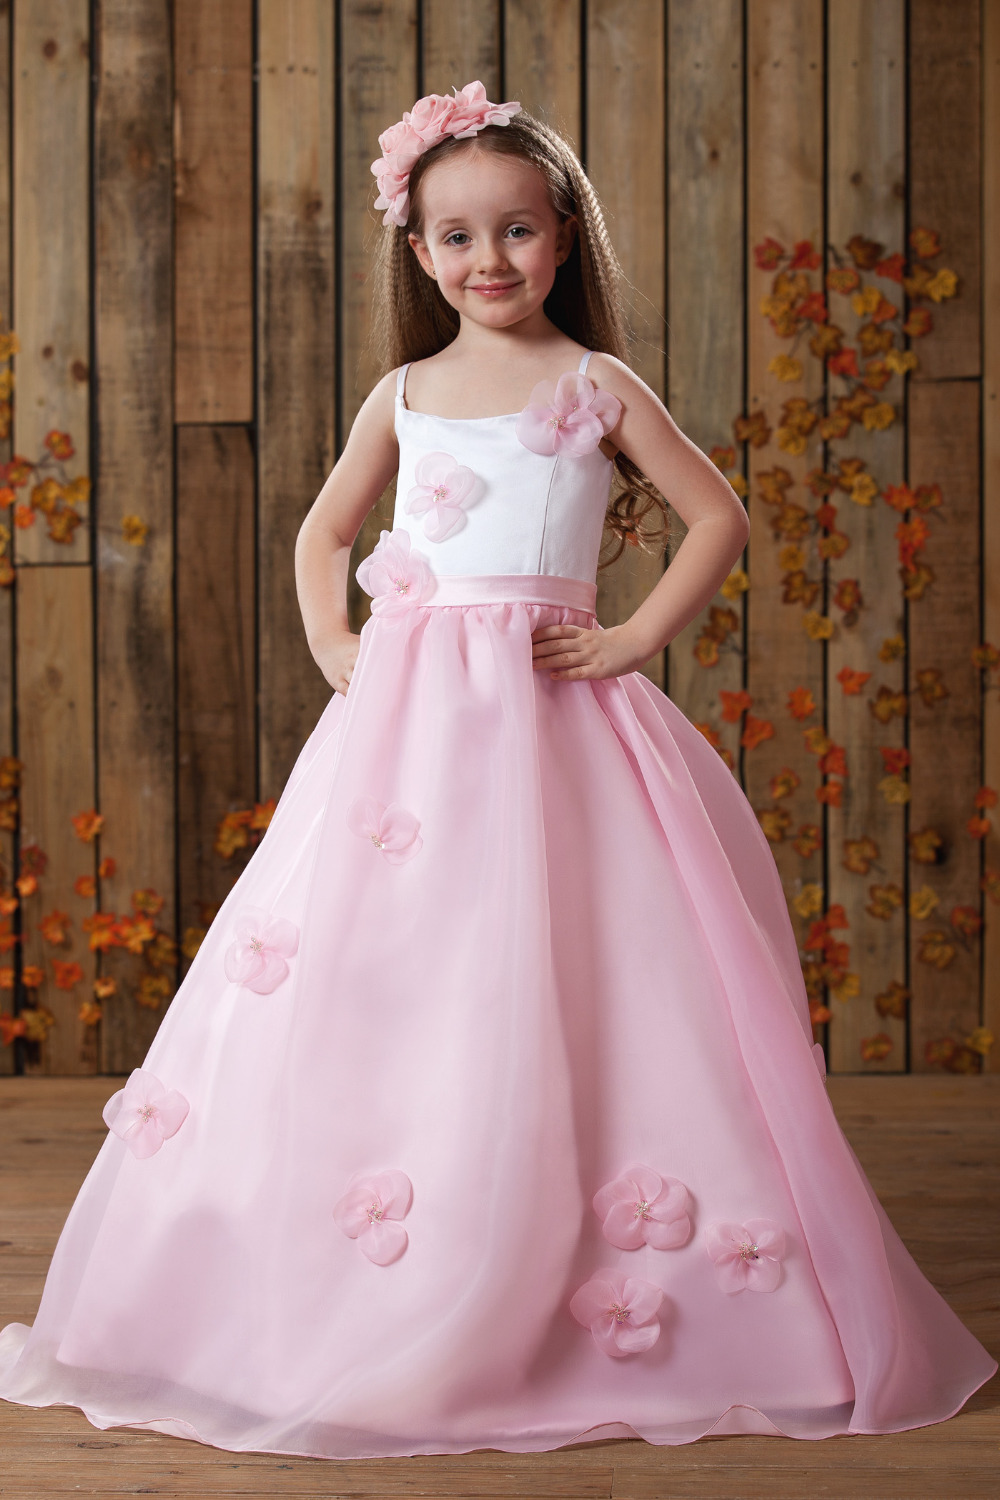 2015 beautiful princess dress royal loading female child wedding 2015 beautiful princess dress royal loading female child wedding female child bridesmaid dress in flower girl dresses from weddings events on ombrellifo Gallery